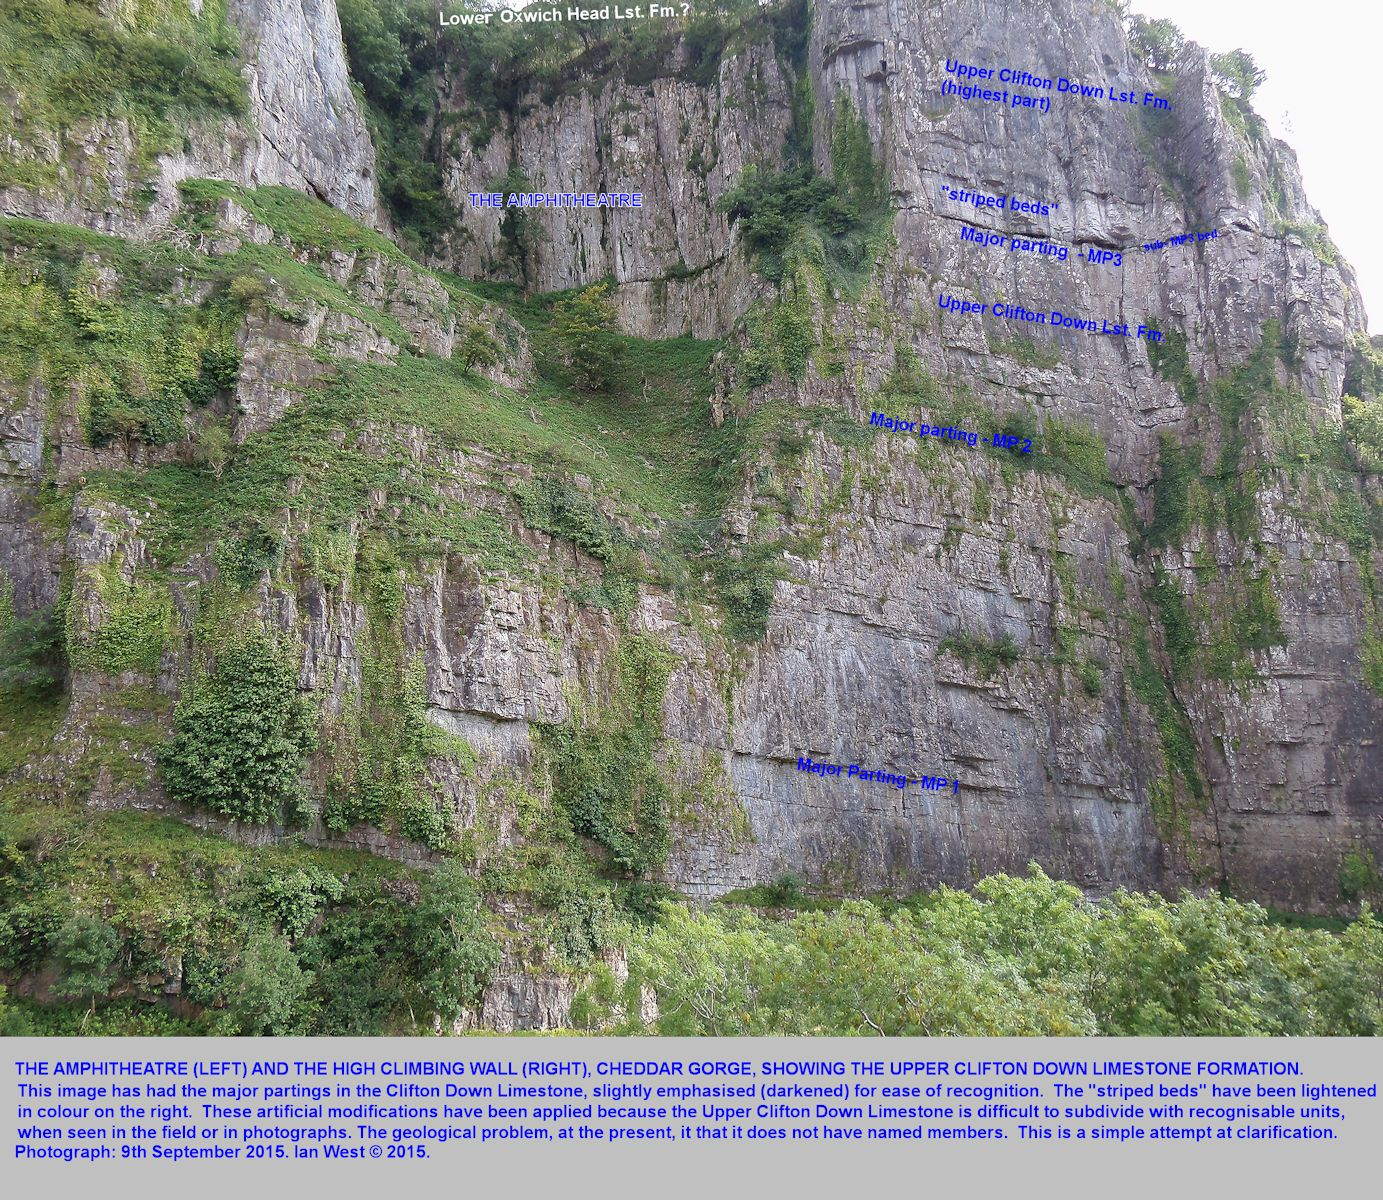 The Amphitheatre and the high climbing cliff at Cheddar Gorge, Mendip Hills, Somerset, all being Upper Clifton Down Limestone, but with some artificial lightening of the striped beds and some darkening of the major partings